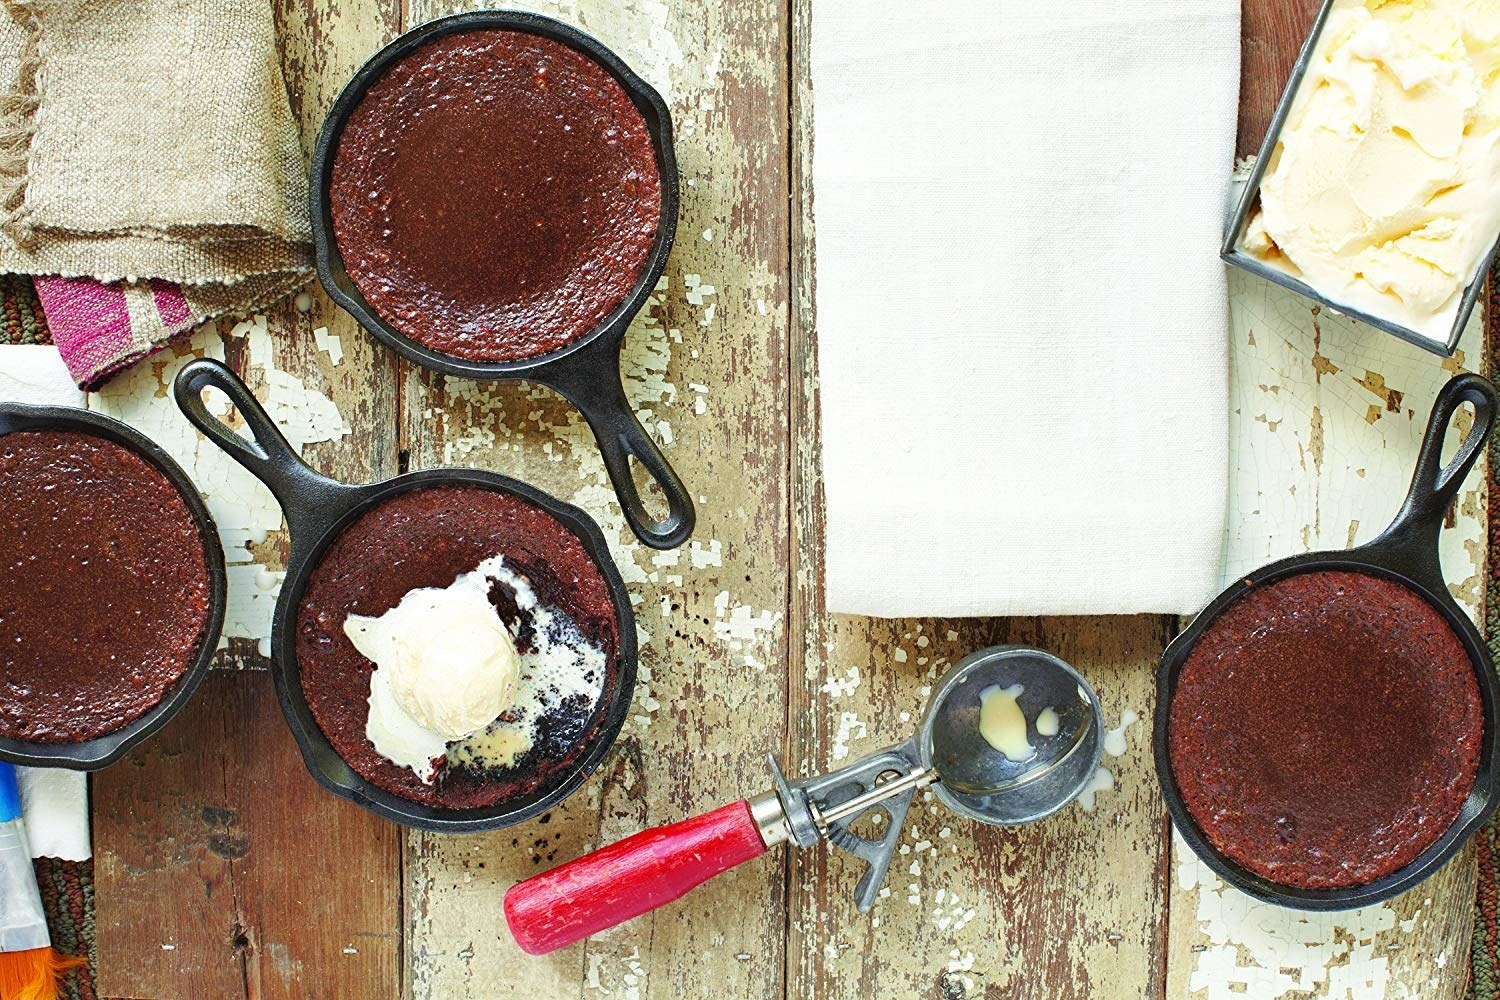 Brownies and ice cream in small skillets